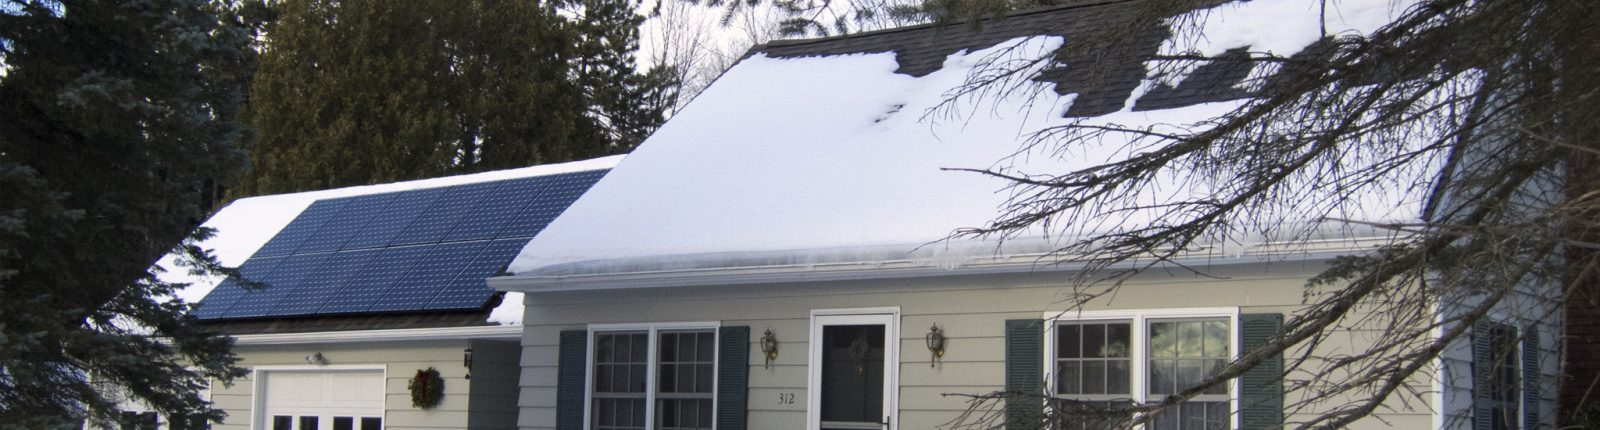 Snow on roof but not on panels